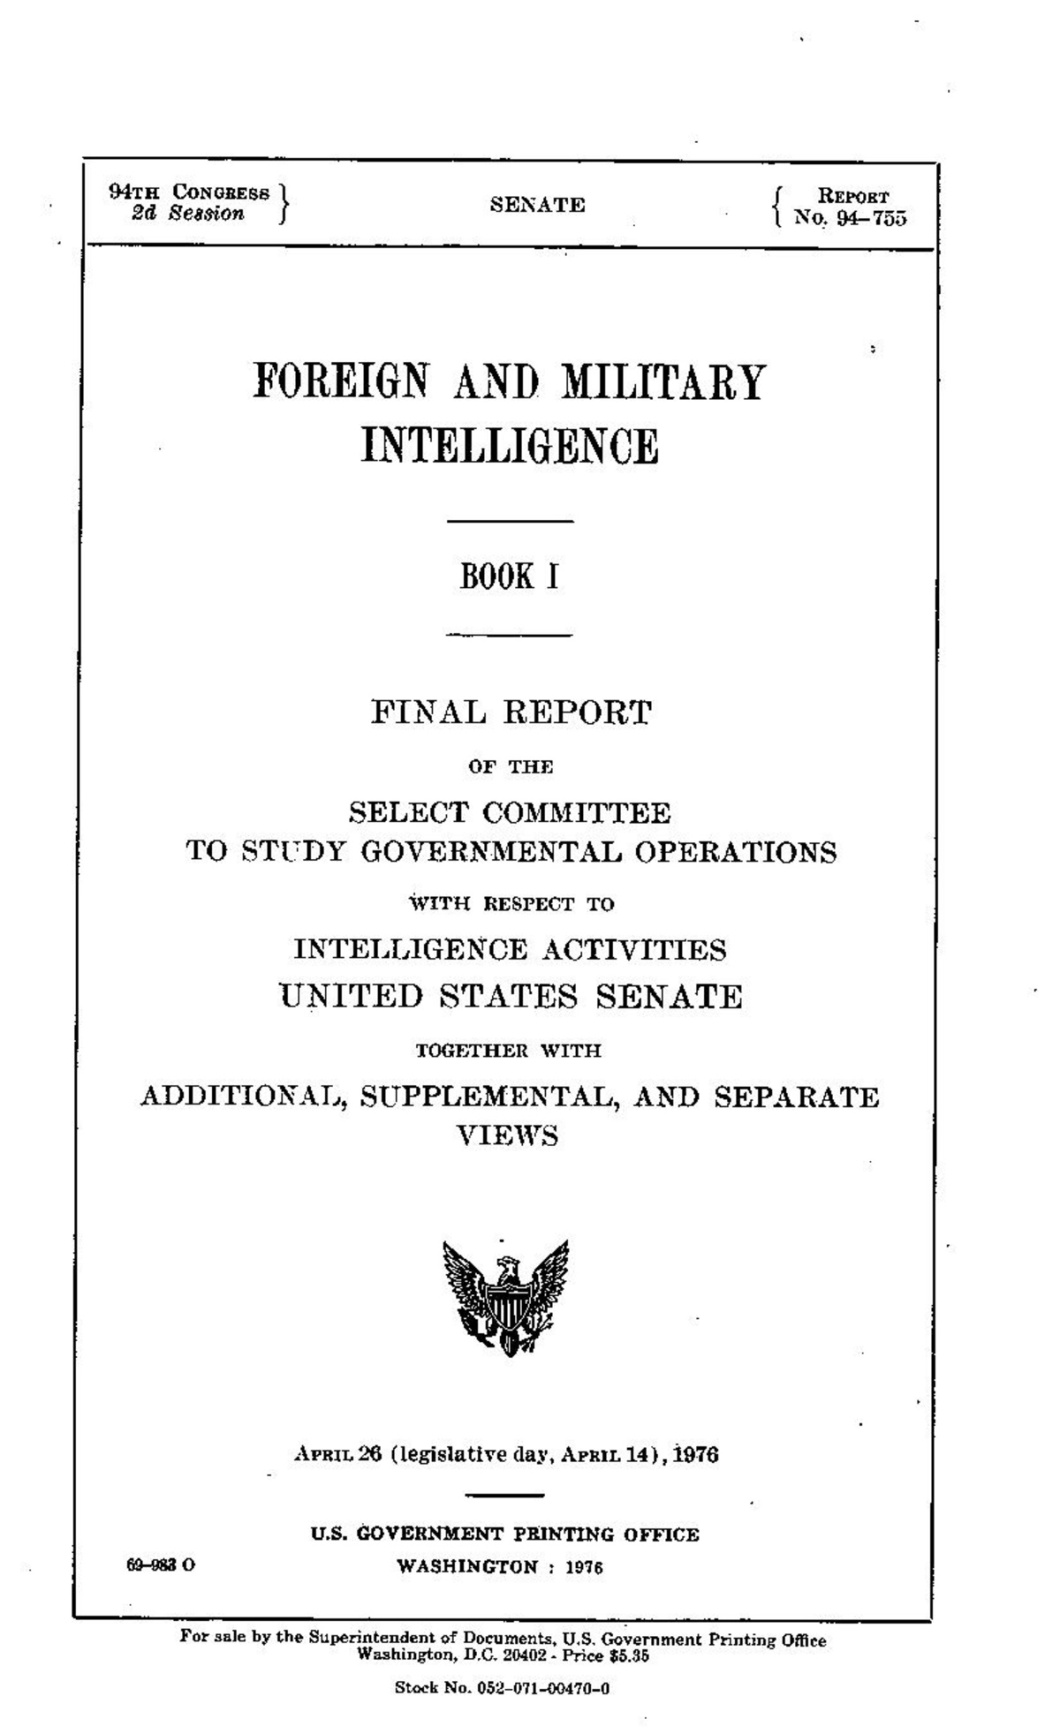 Church_Committee_report_(Book_I,_Foreign_and_Military_Intelligence).pdf